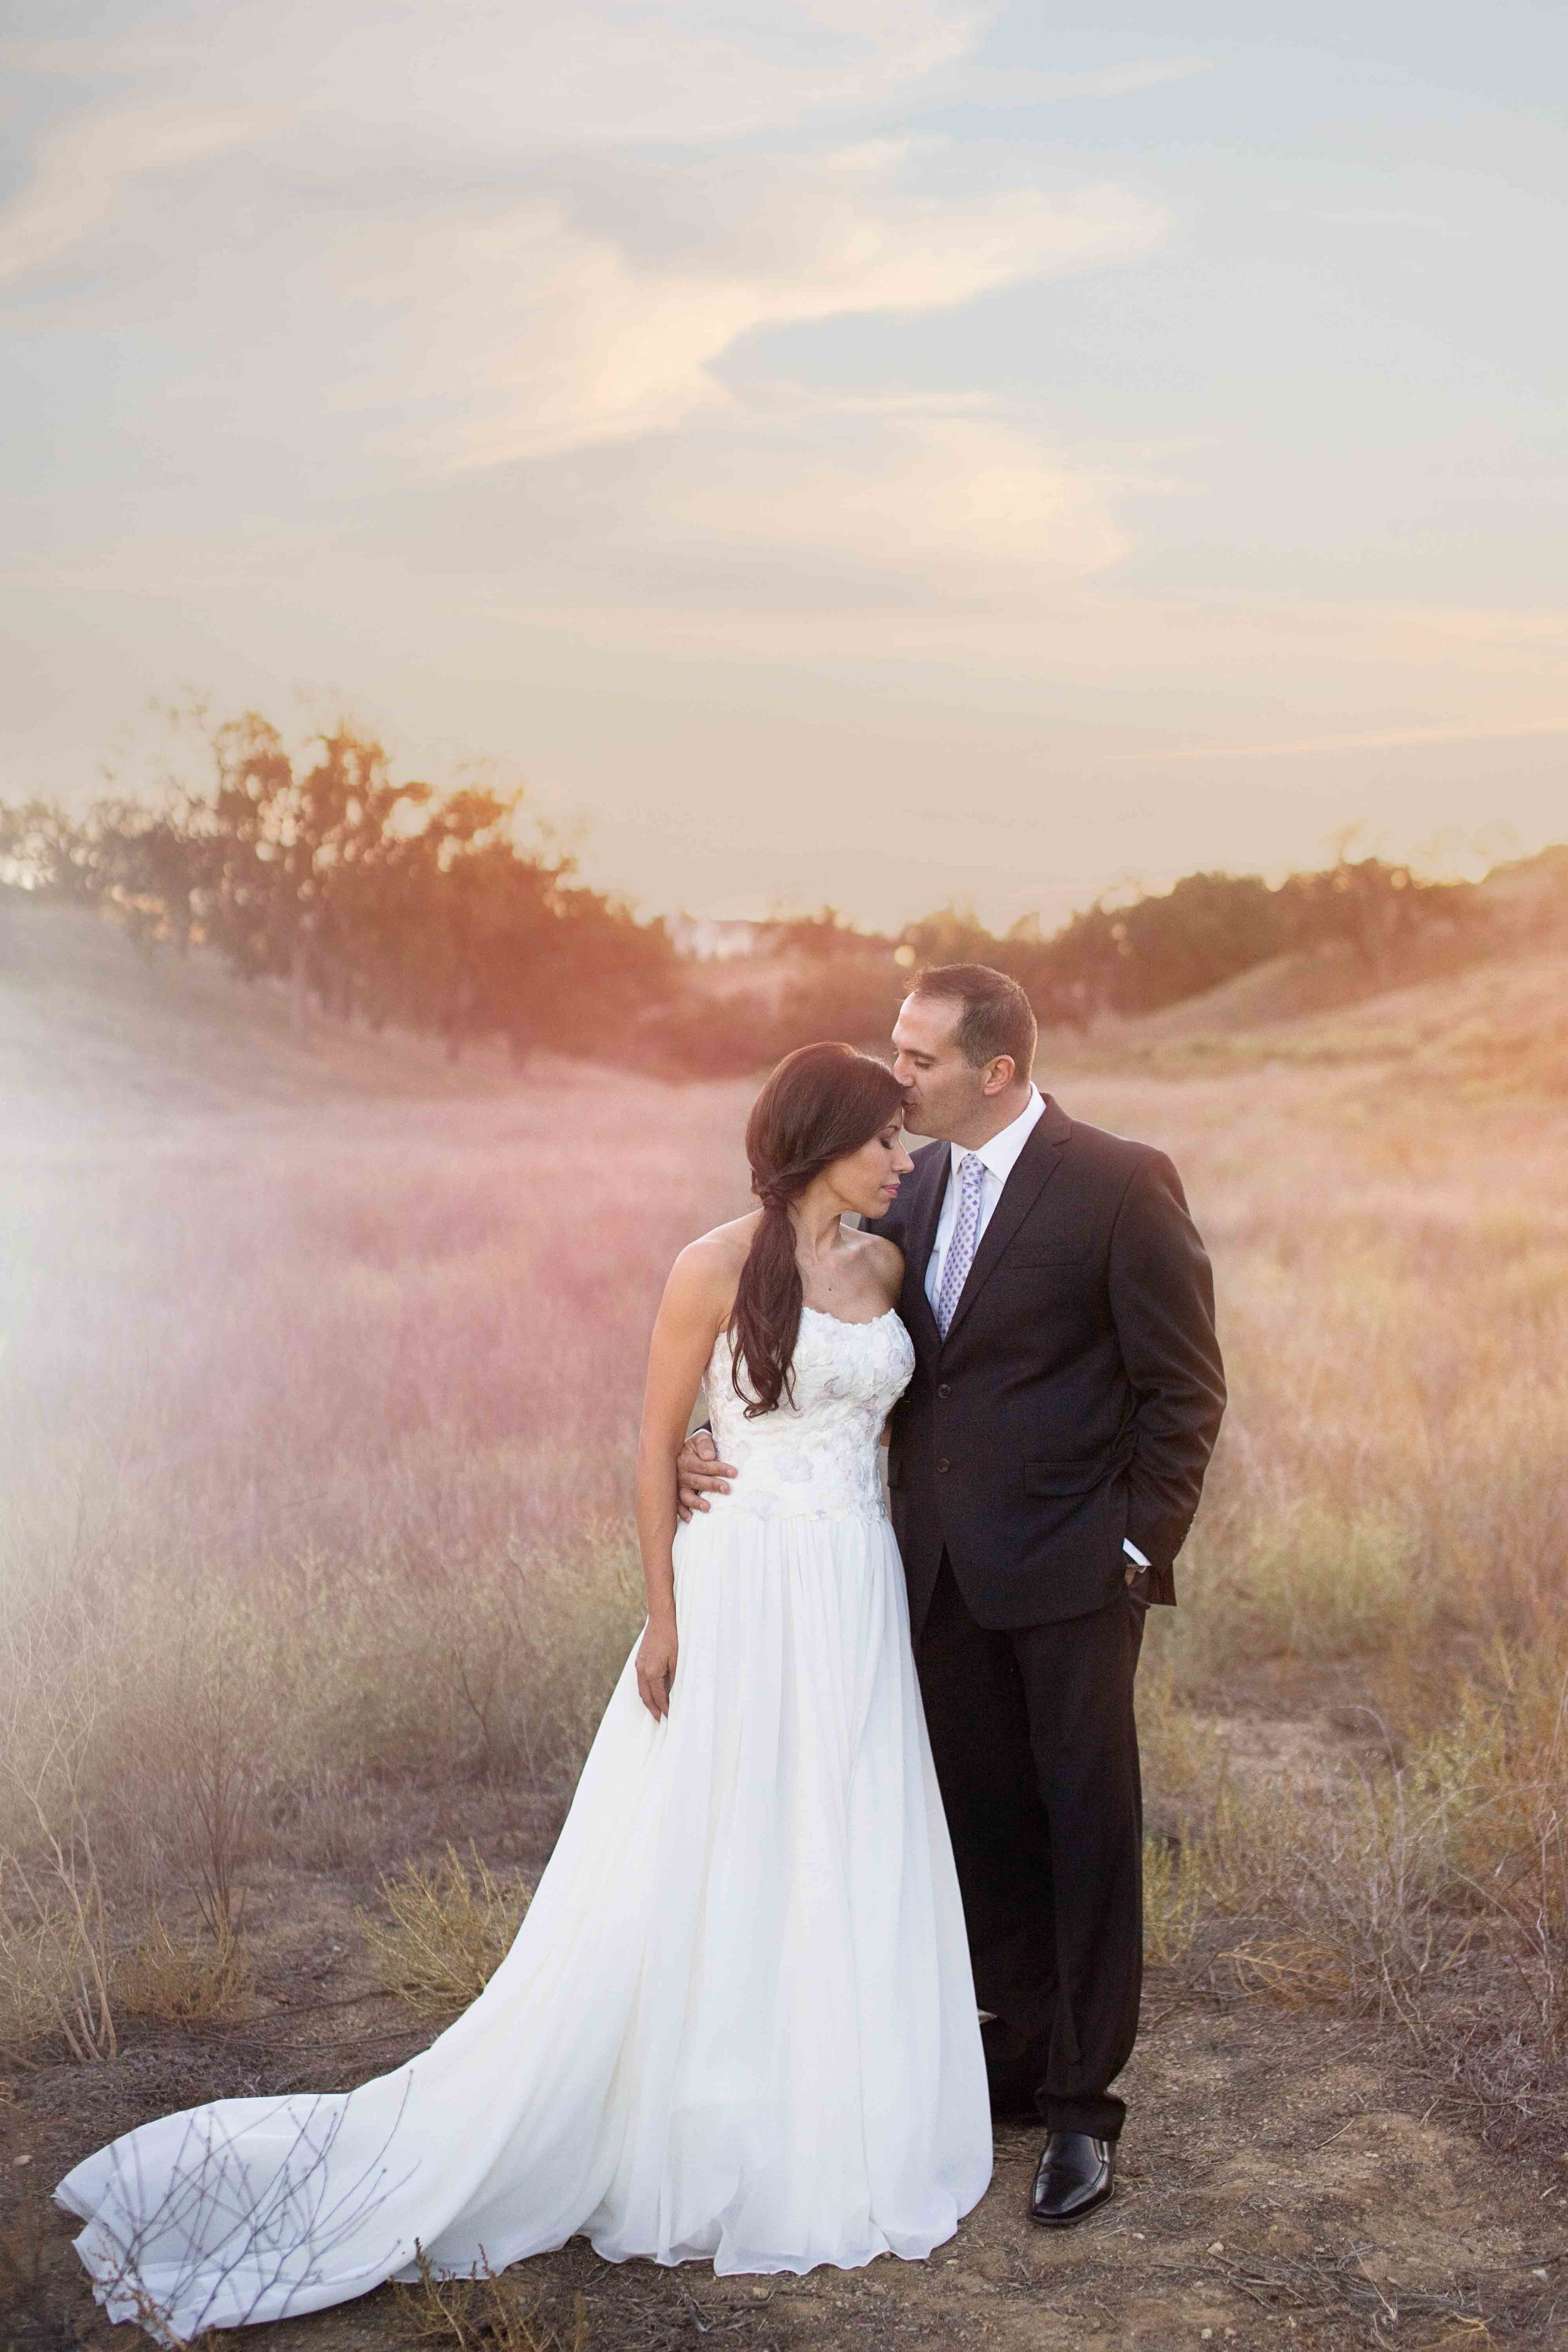 Sisily_and_Edwin_BRIDAL_PORTRAITS_BrienneMichellePhotography_089.JPG